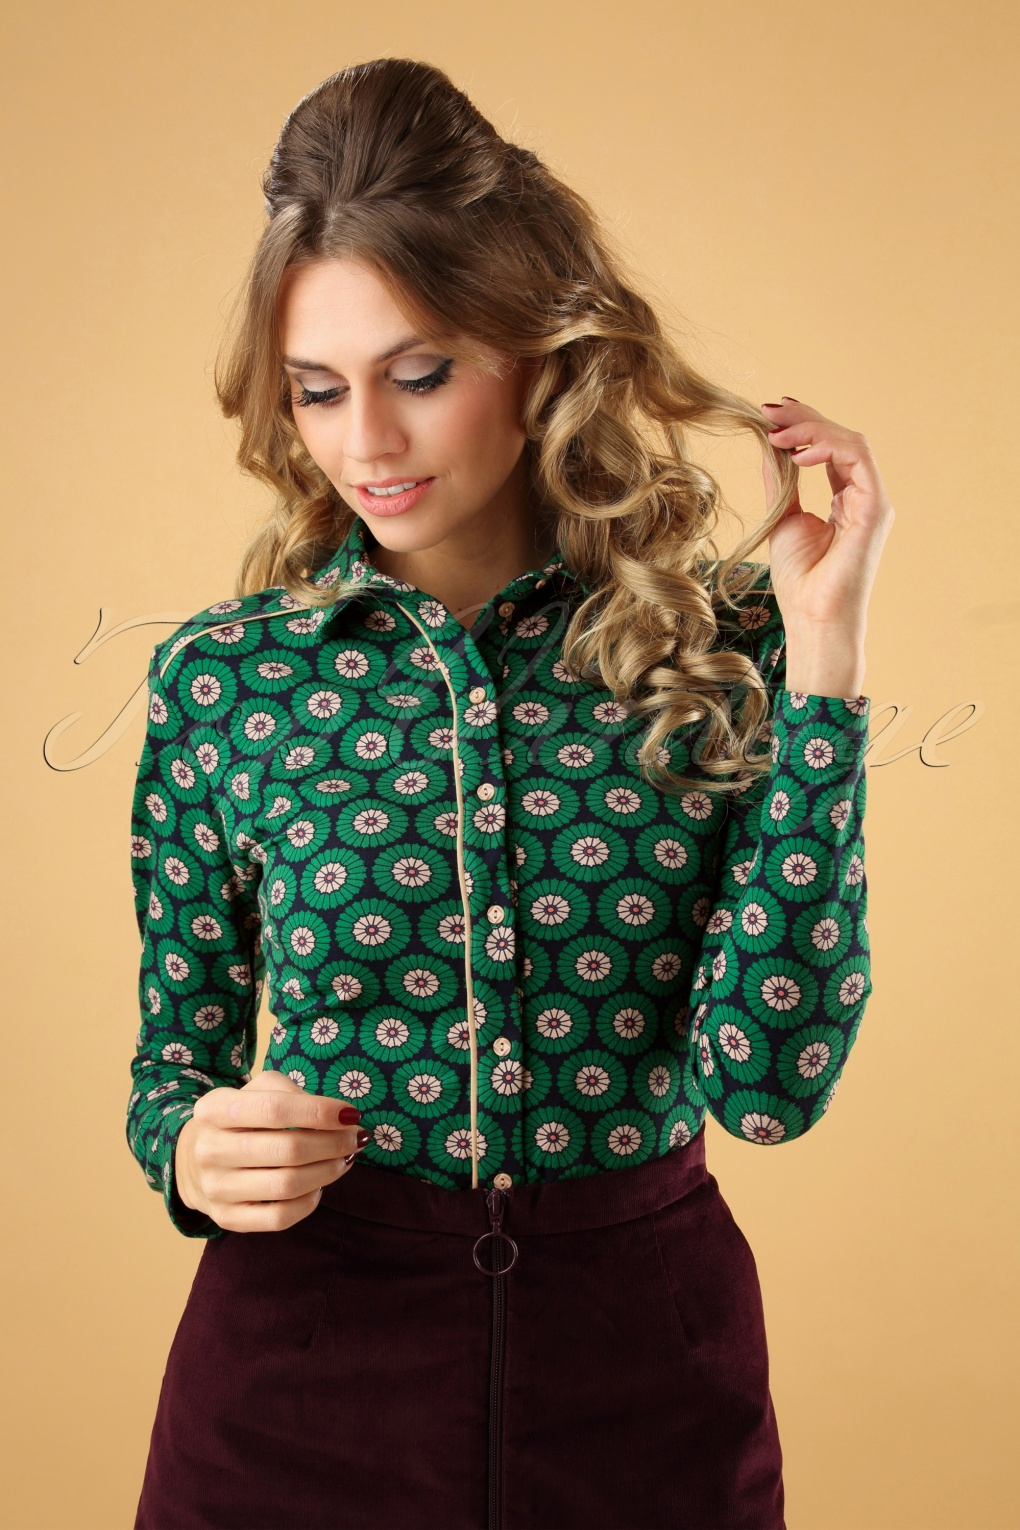 60s Shirts, T-shirt, Blouses | 70s Shirts, Tops, Vests 60s Love Was Really Meant For You Blouse in Green £62.33 AT vintagedancer.com